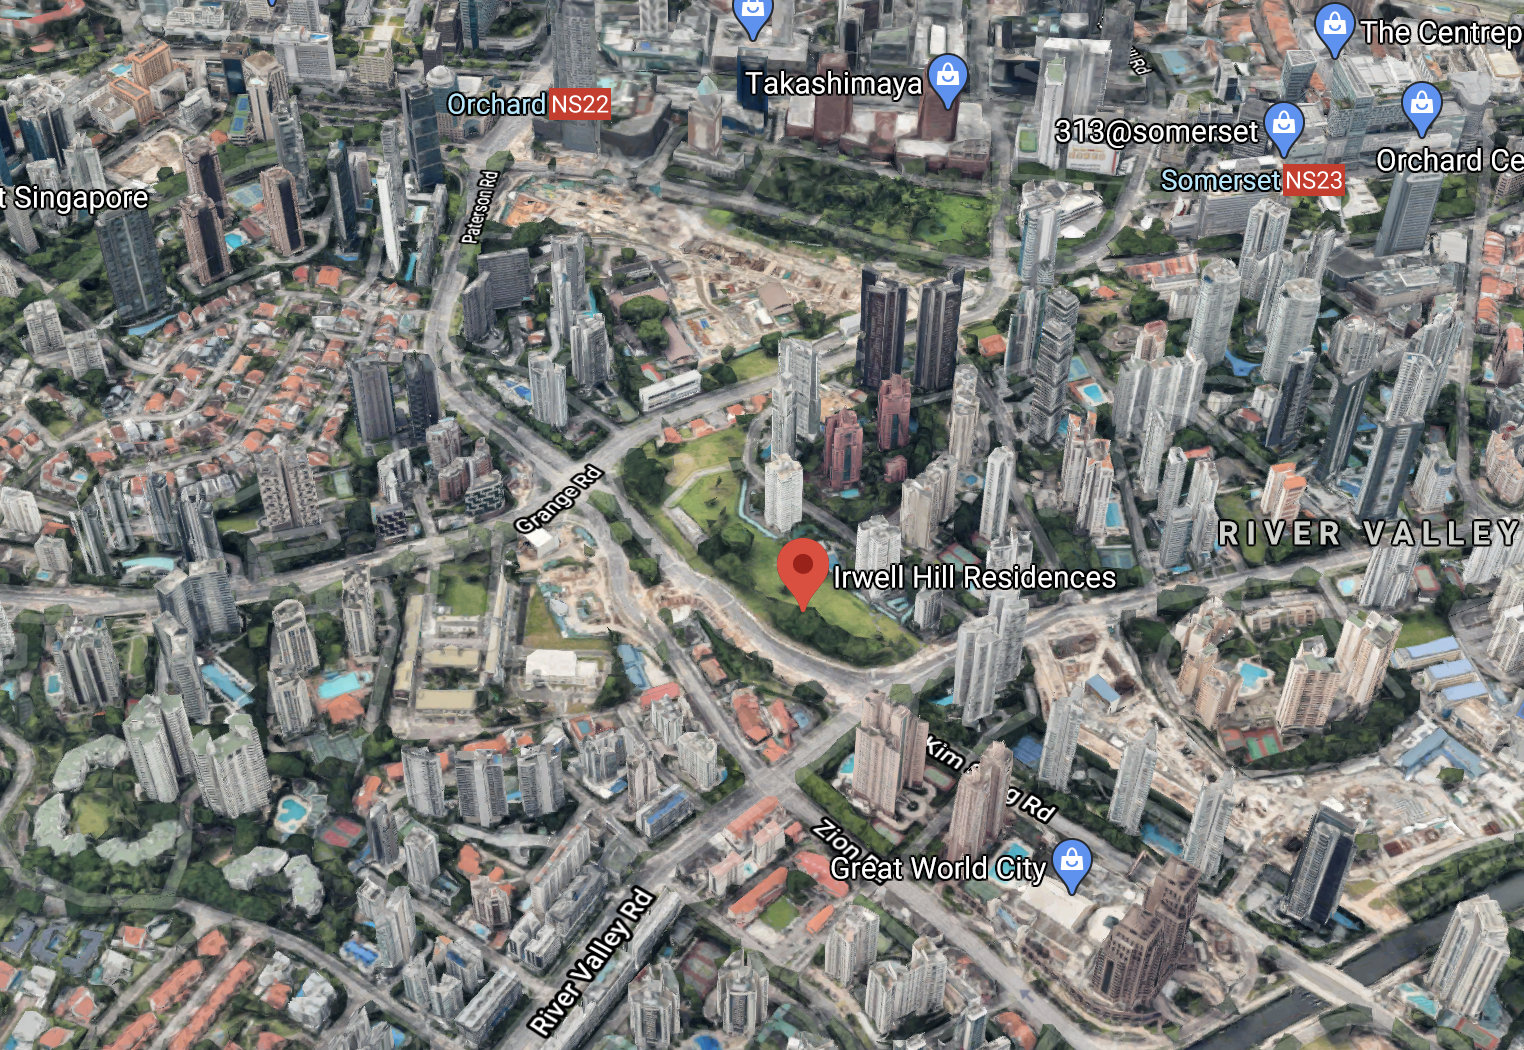 Irwell Hill Residences Location . Between River Valley and Orchard Road